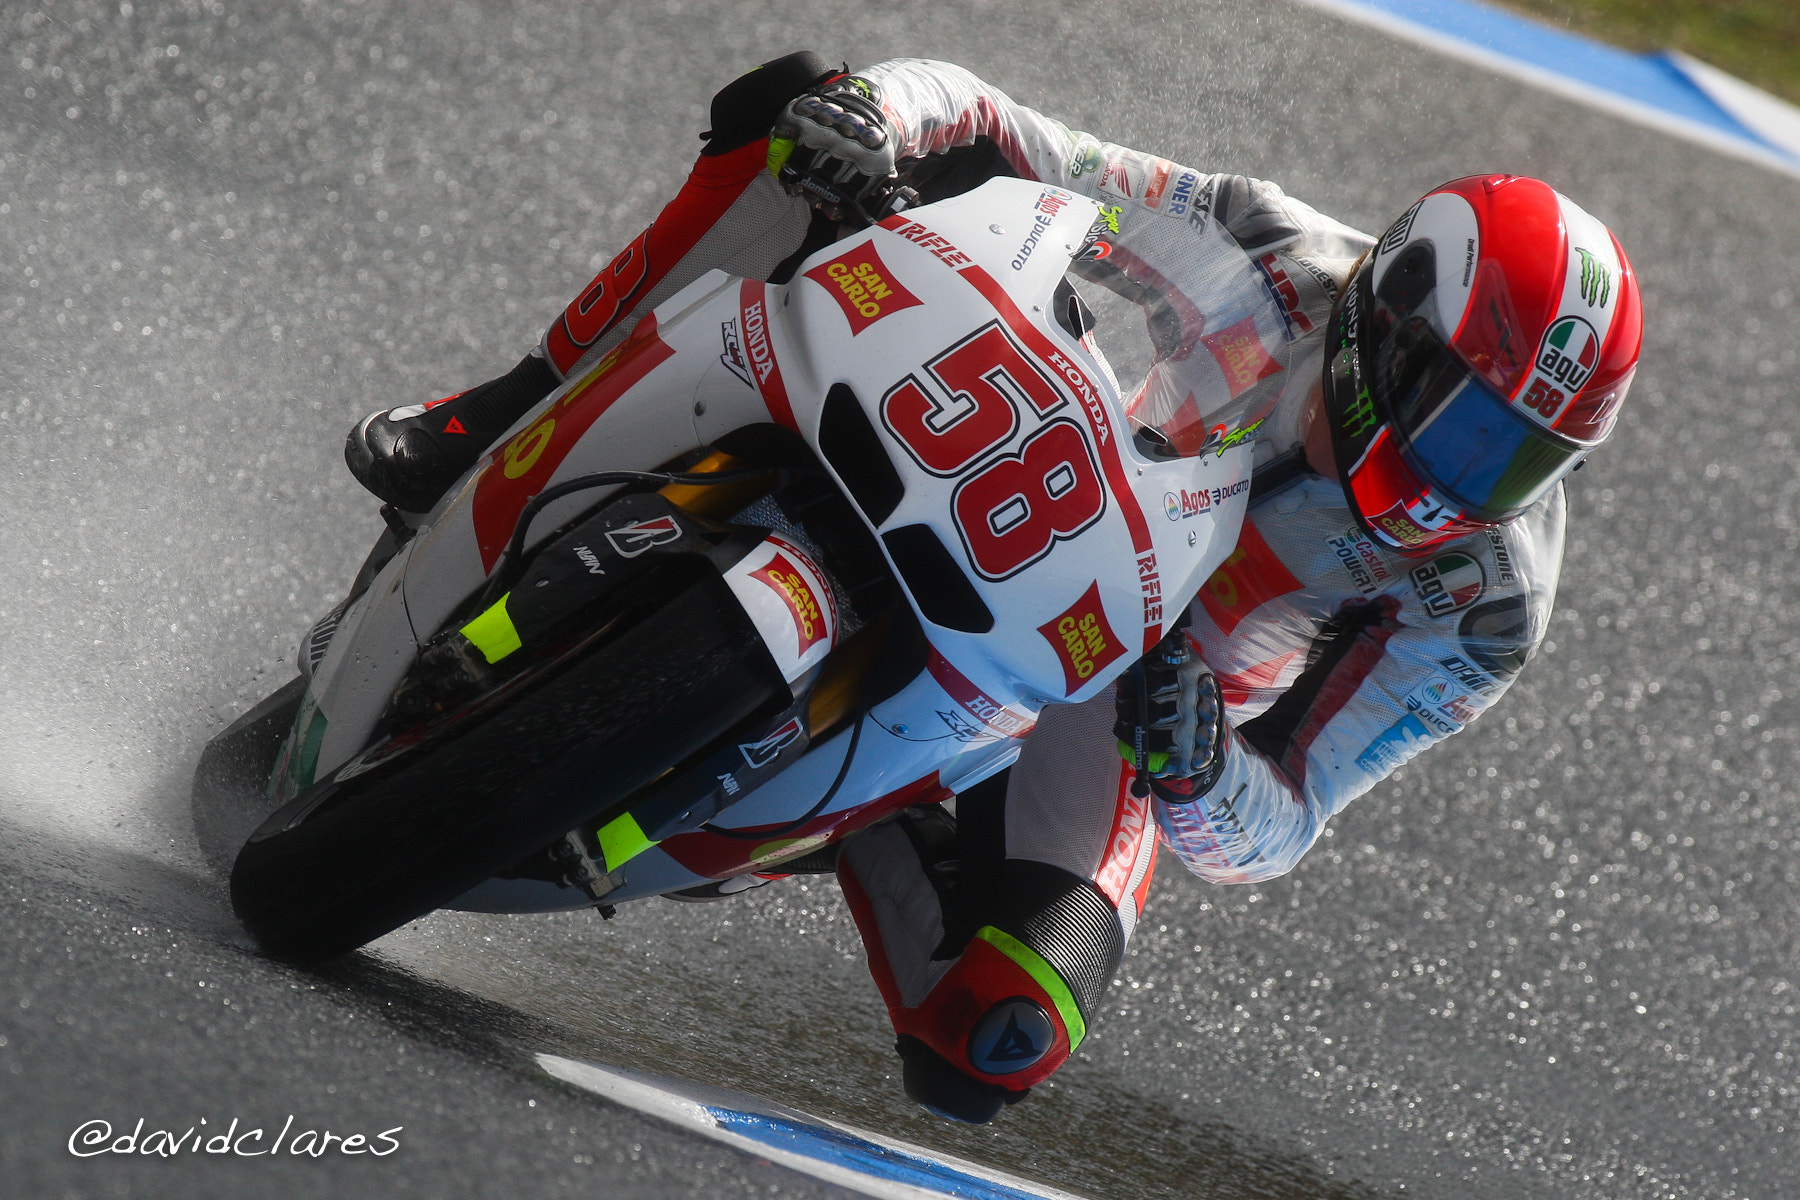 Photograph Marco Simoncelli REF. 0140 by David Clares on 500px